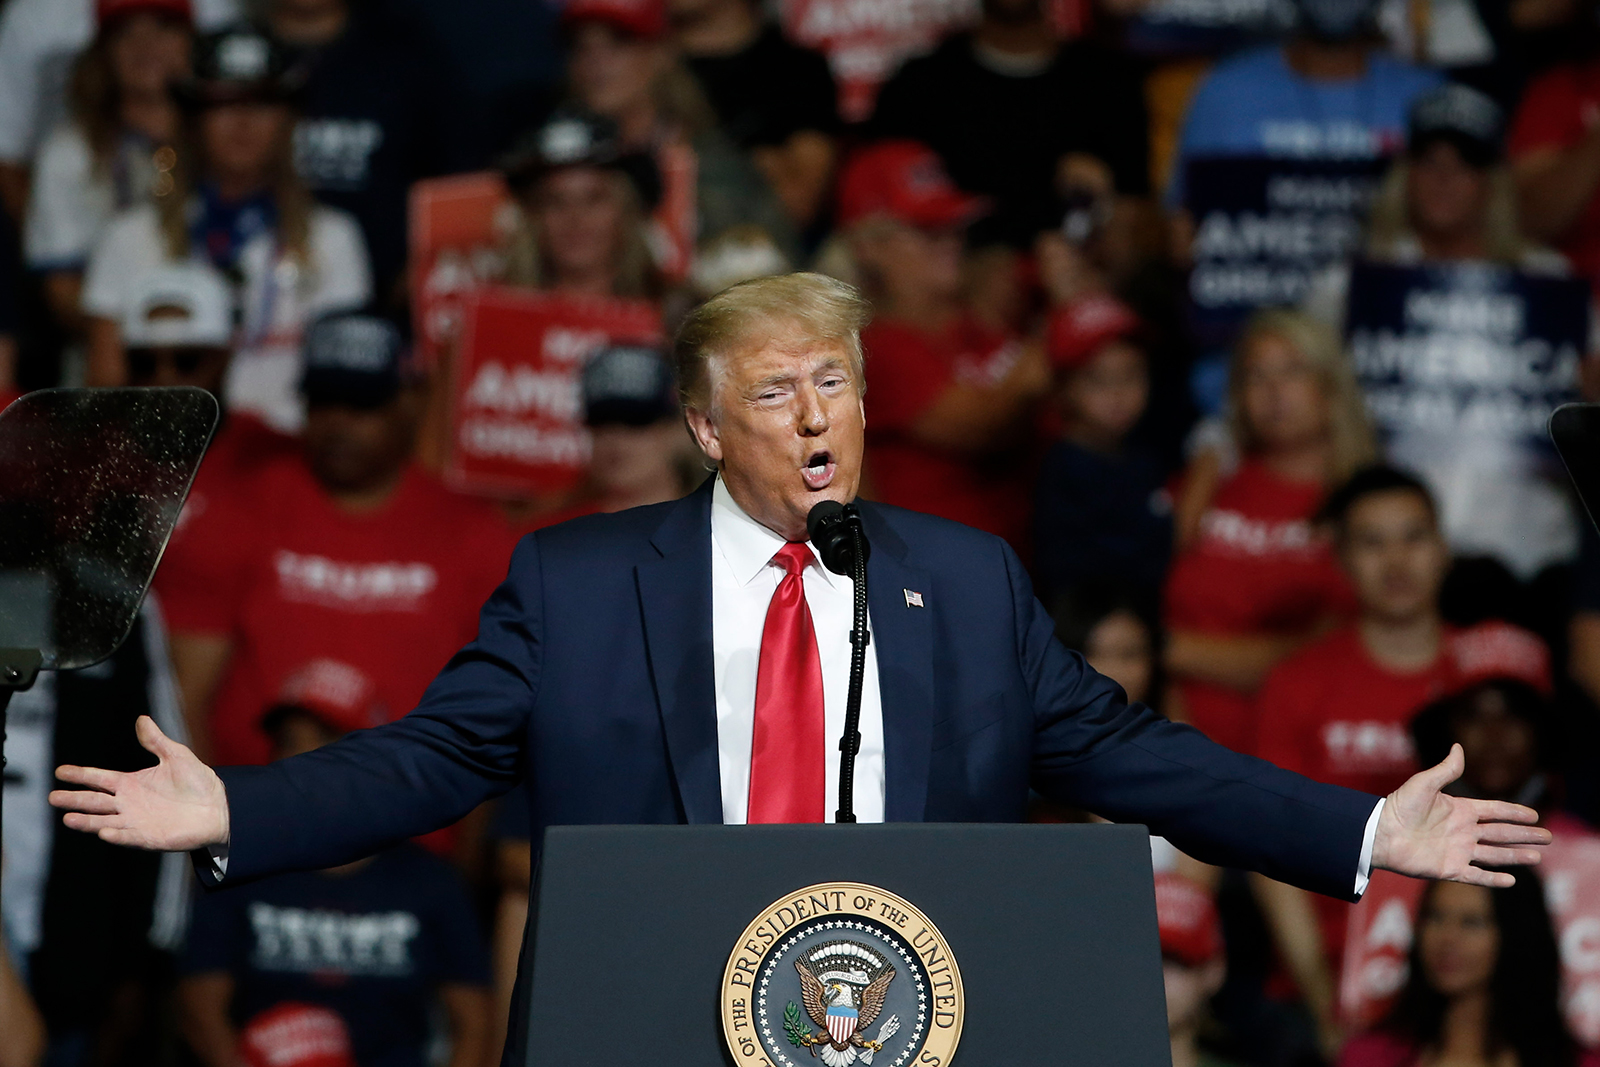 US President Donald Trump speaks during a campaign rally in Tulsa, Oklahoma, on Saturday, June 20.